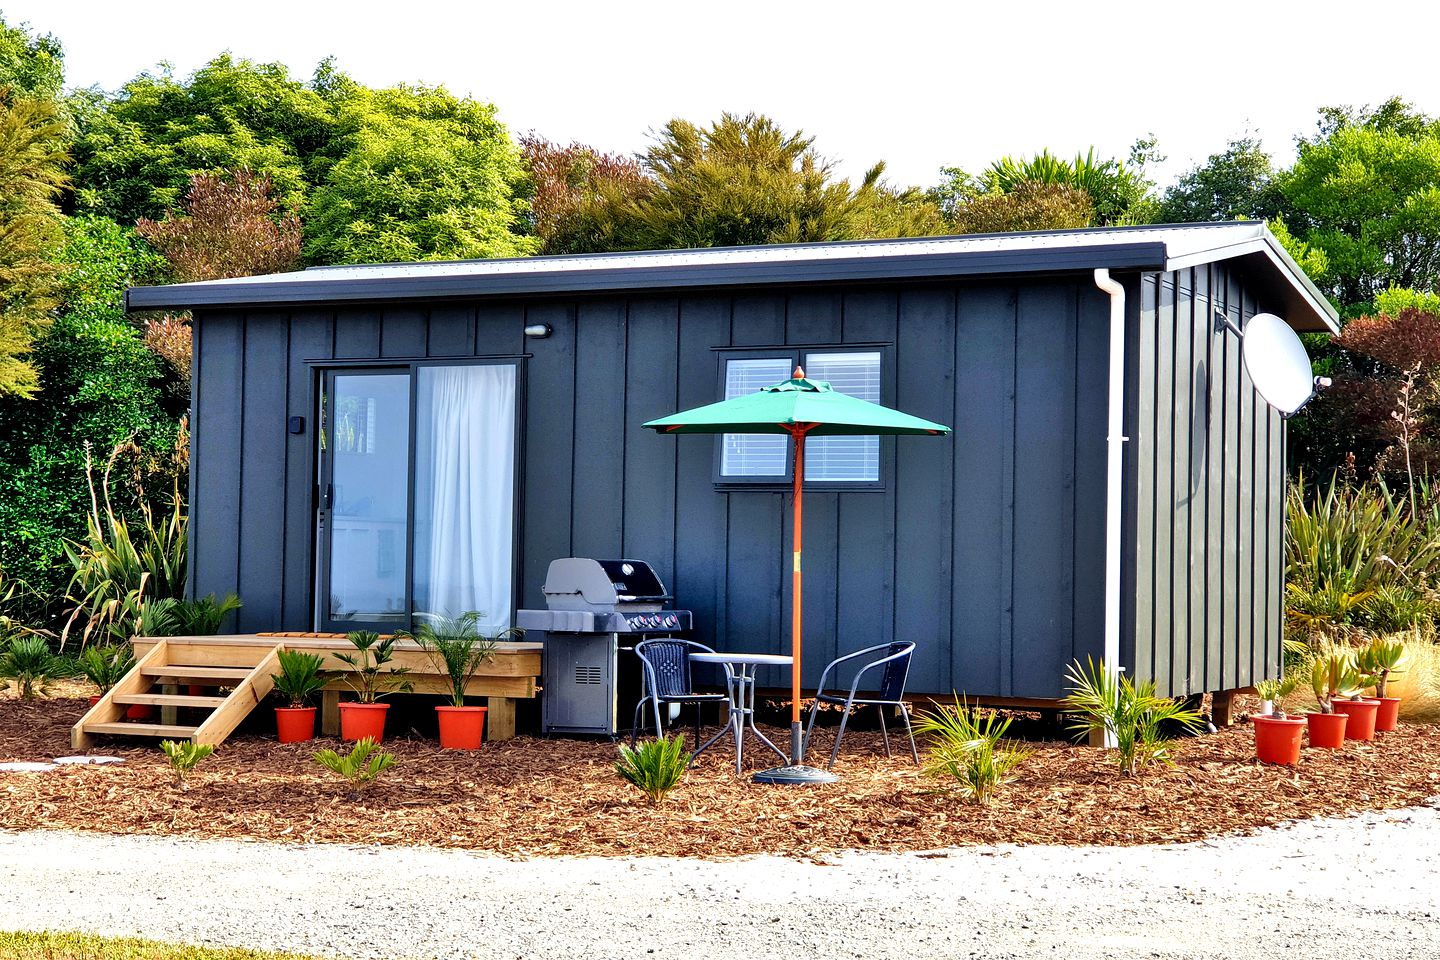 This Kerikeri accommodation is perfect for romantic getaways